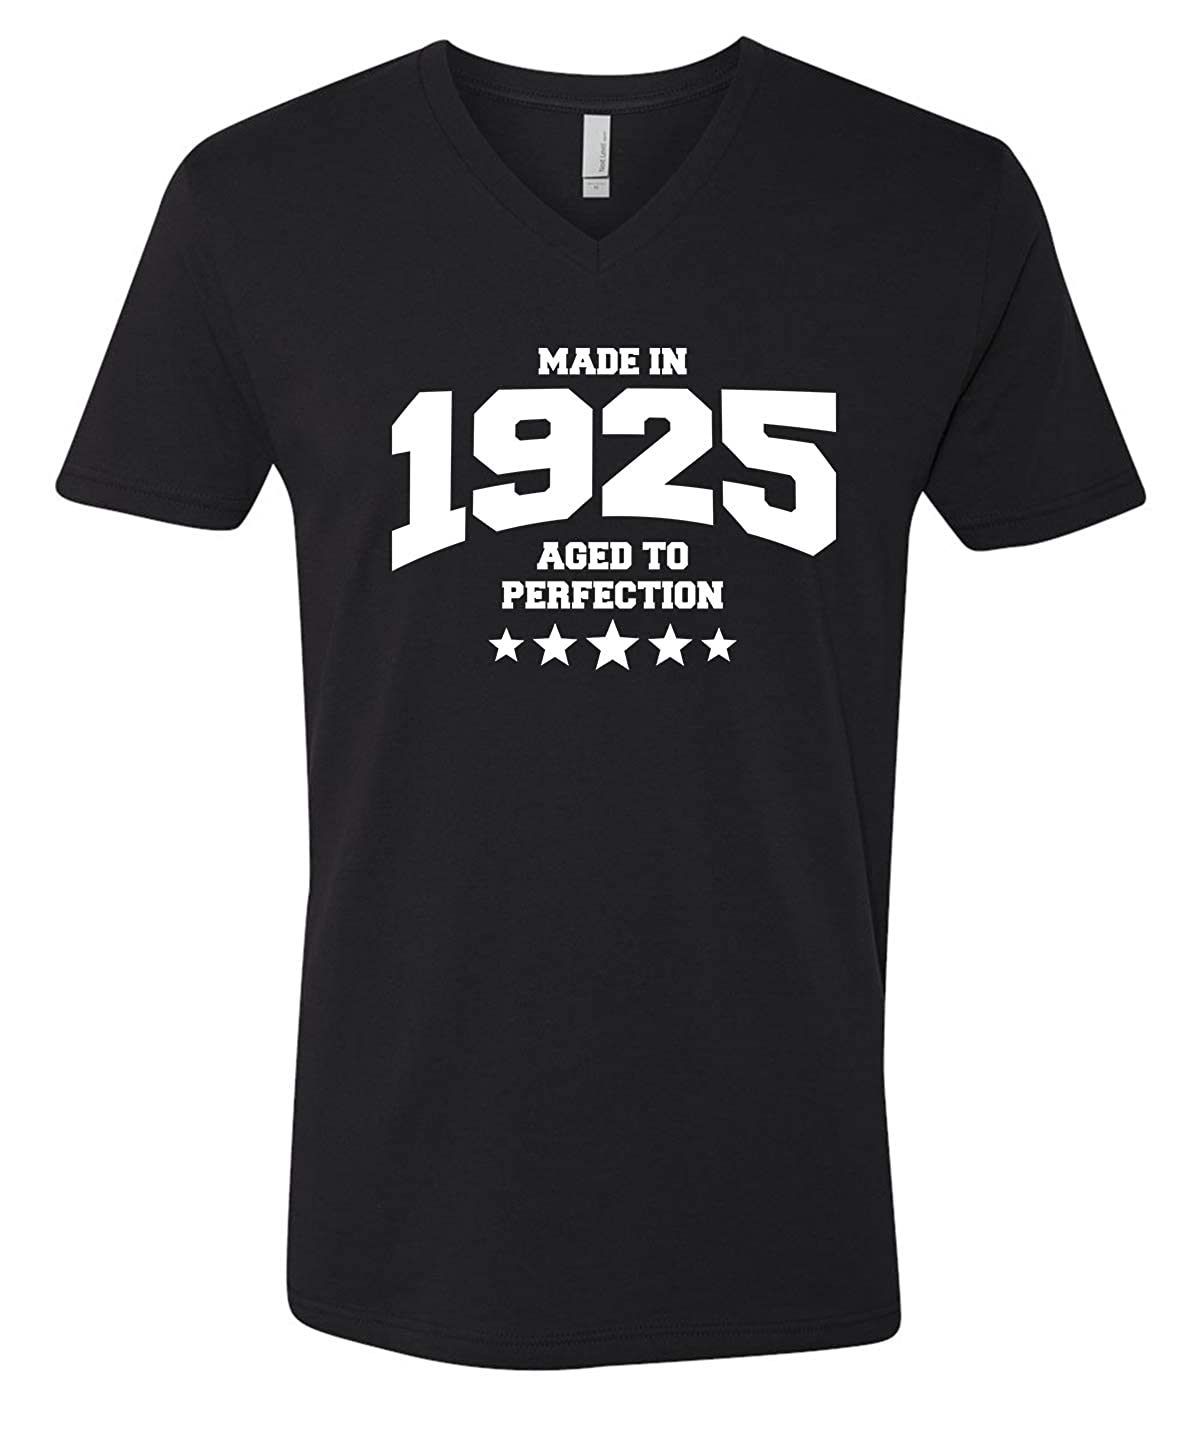 1925 T-Shirt Tenacitee Mens Athletic Aged to Perfection